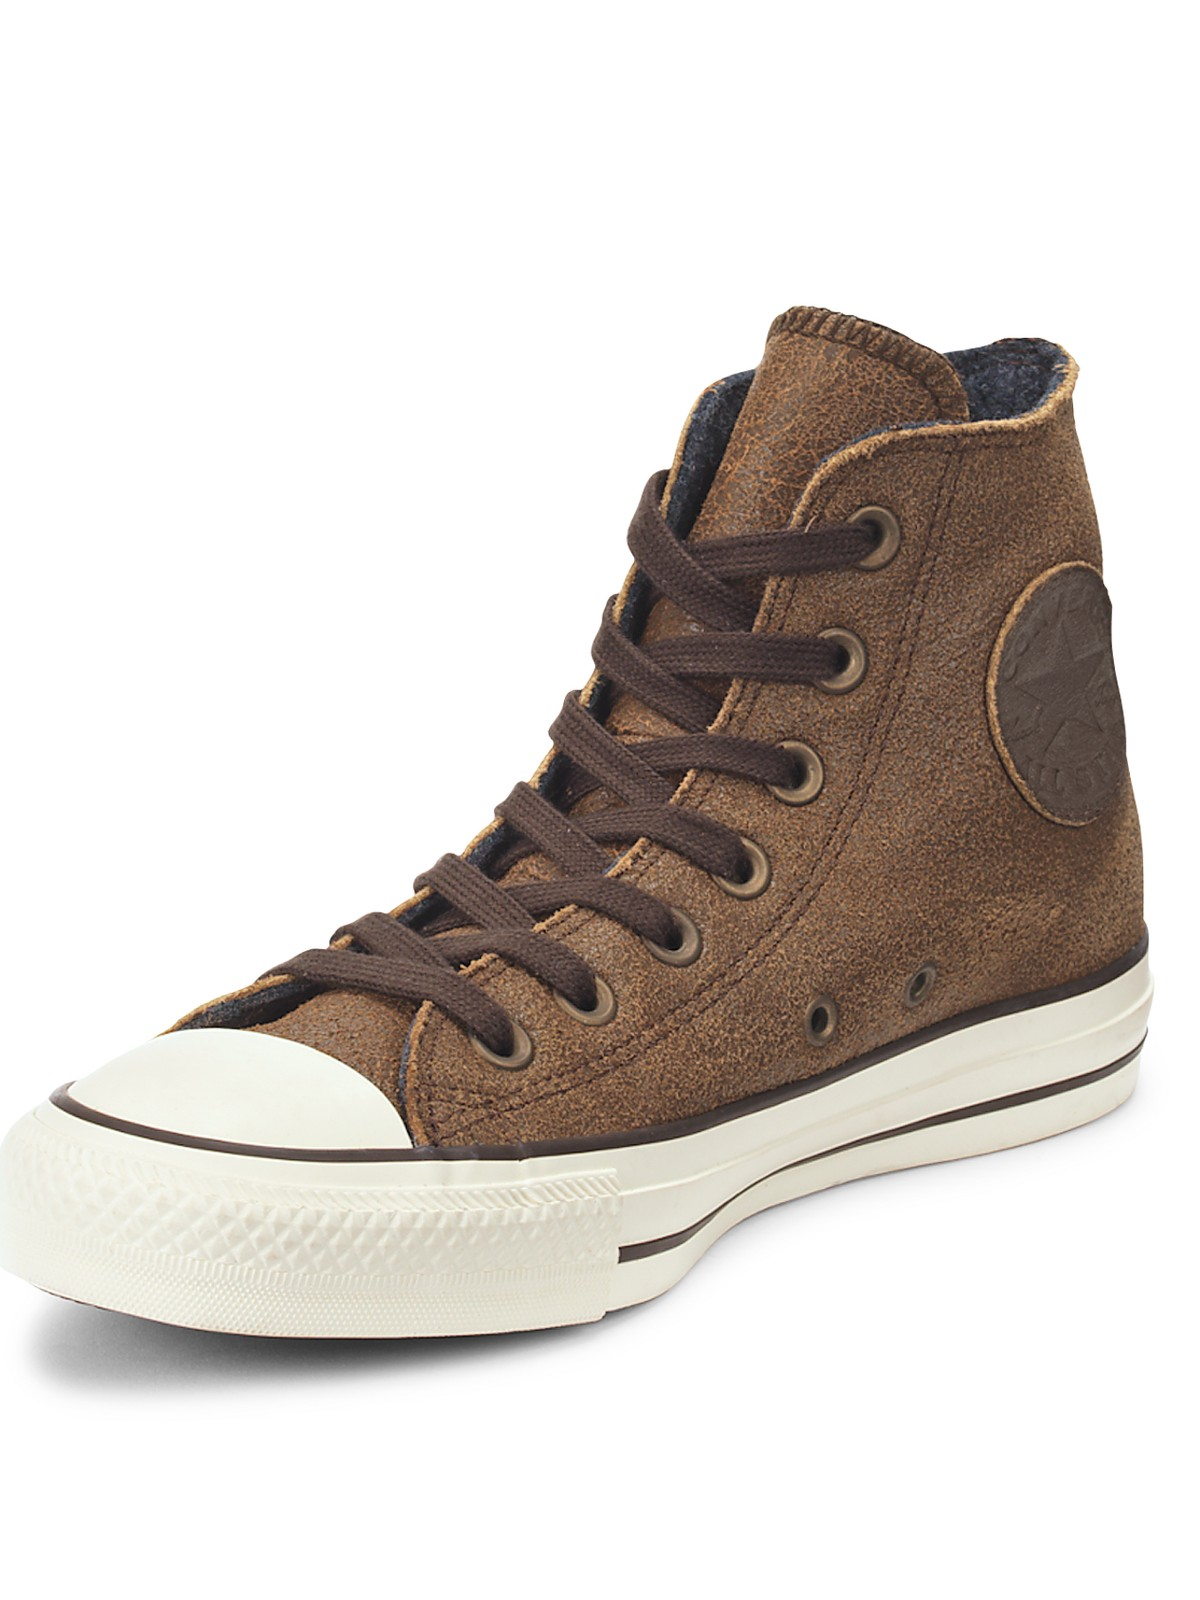 Converse Converse Chuck Taylor All Star Side Zip Leather